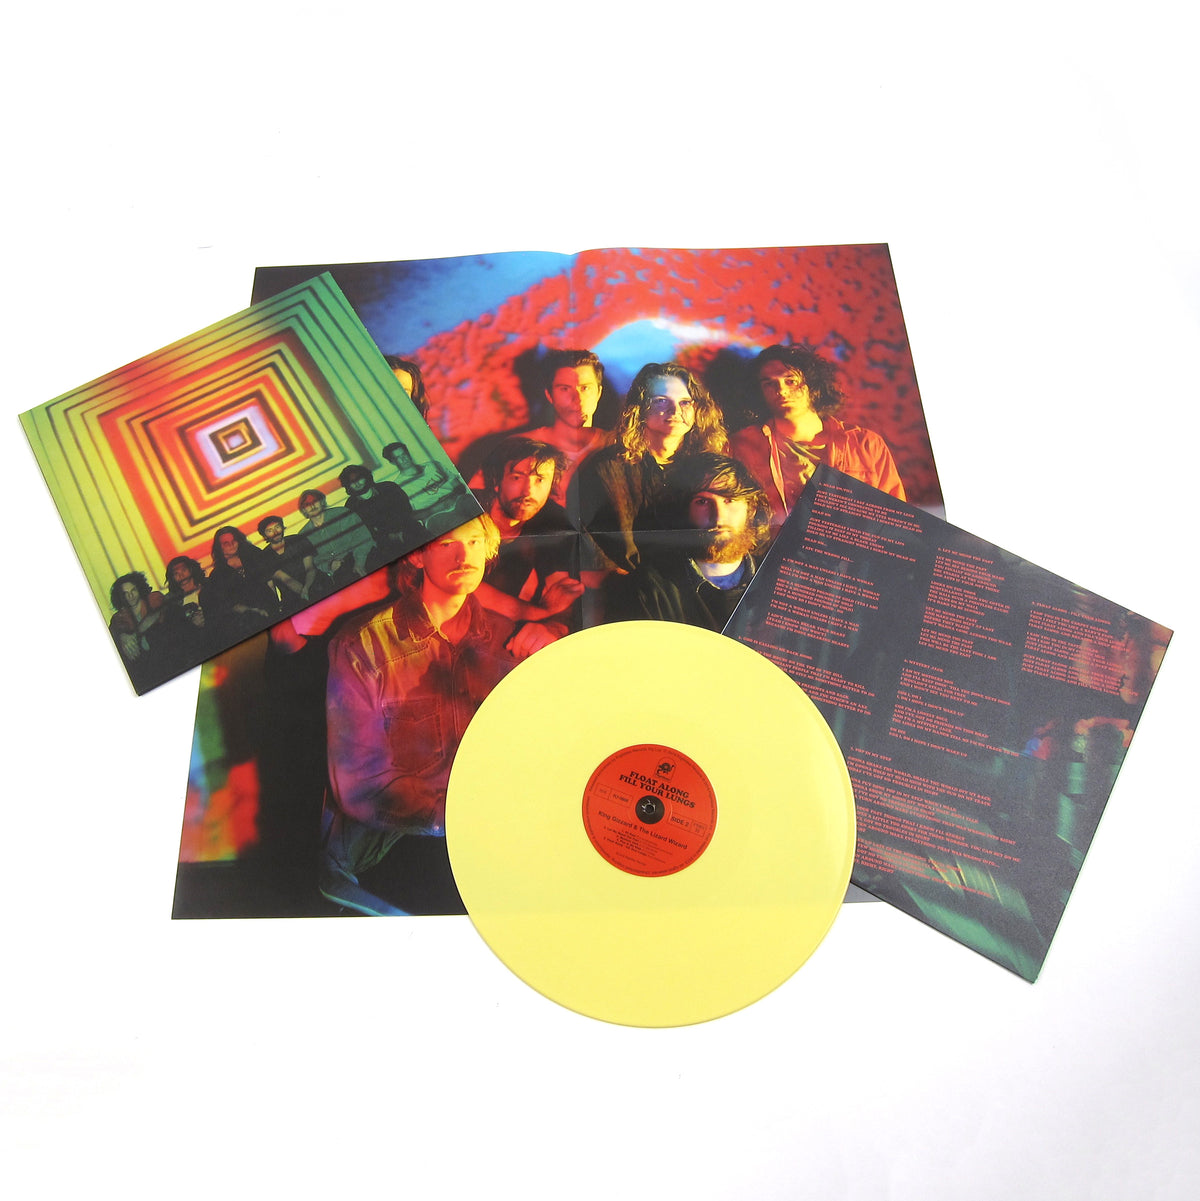 King Gizzard And The Lizard Wizard: Float Along - Fill Your Lungs (Colored Vinyl) Vinyl LP